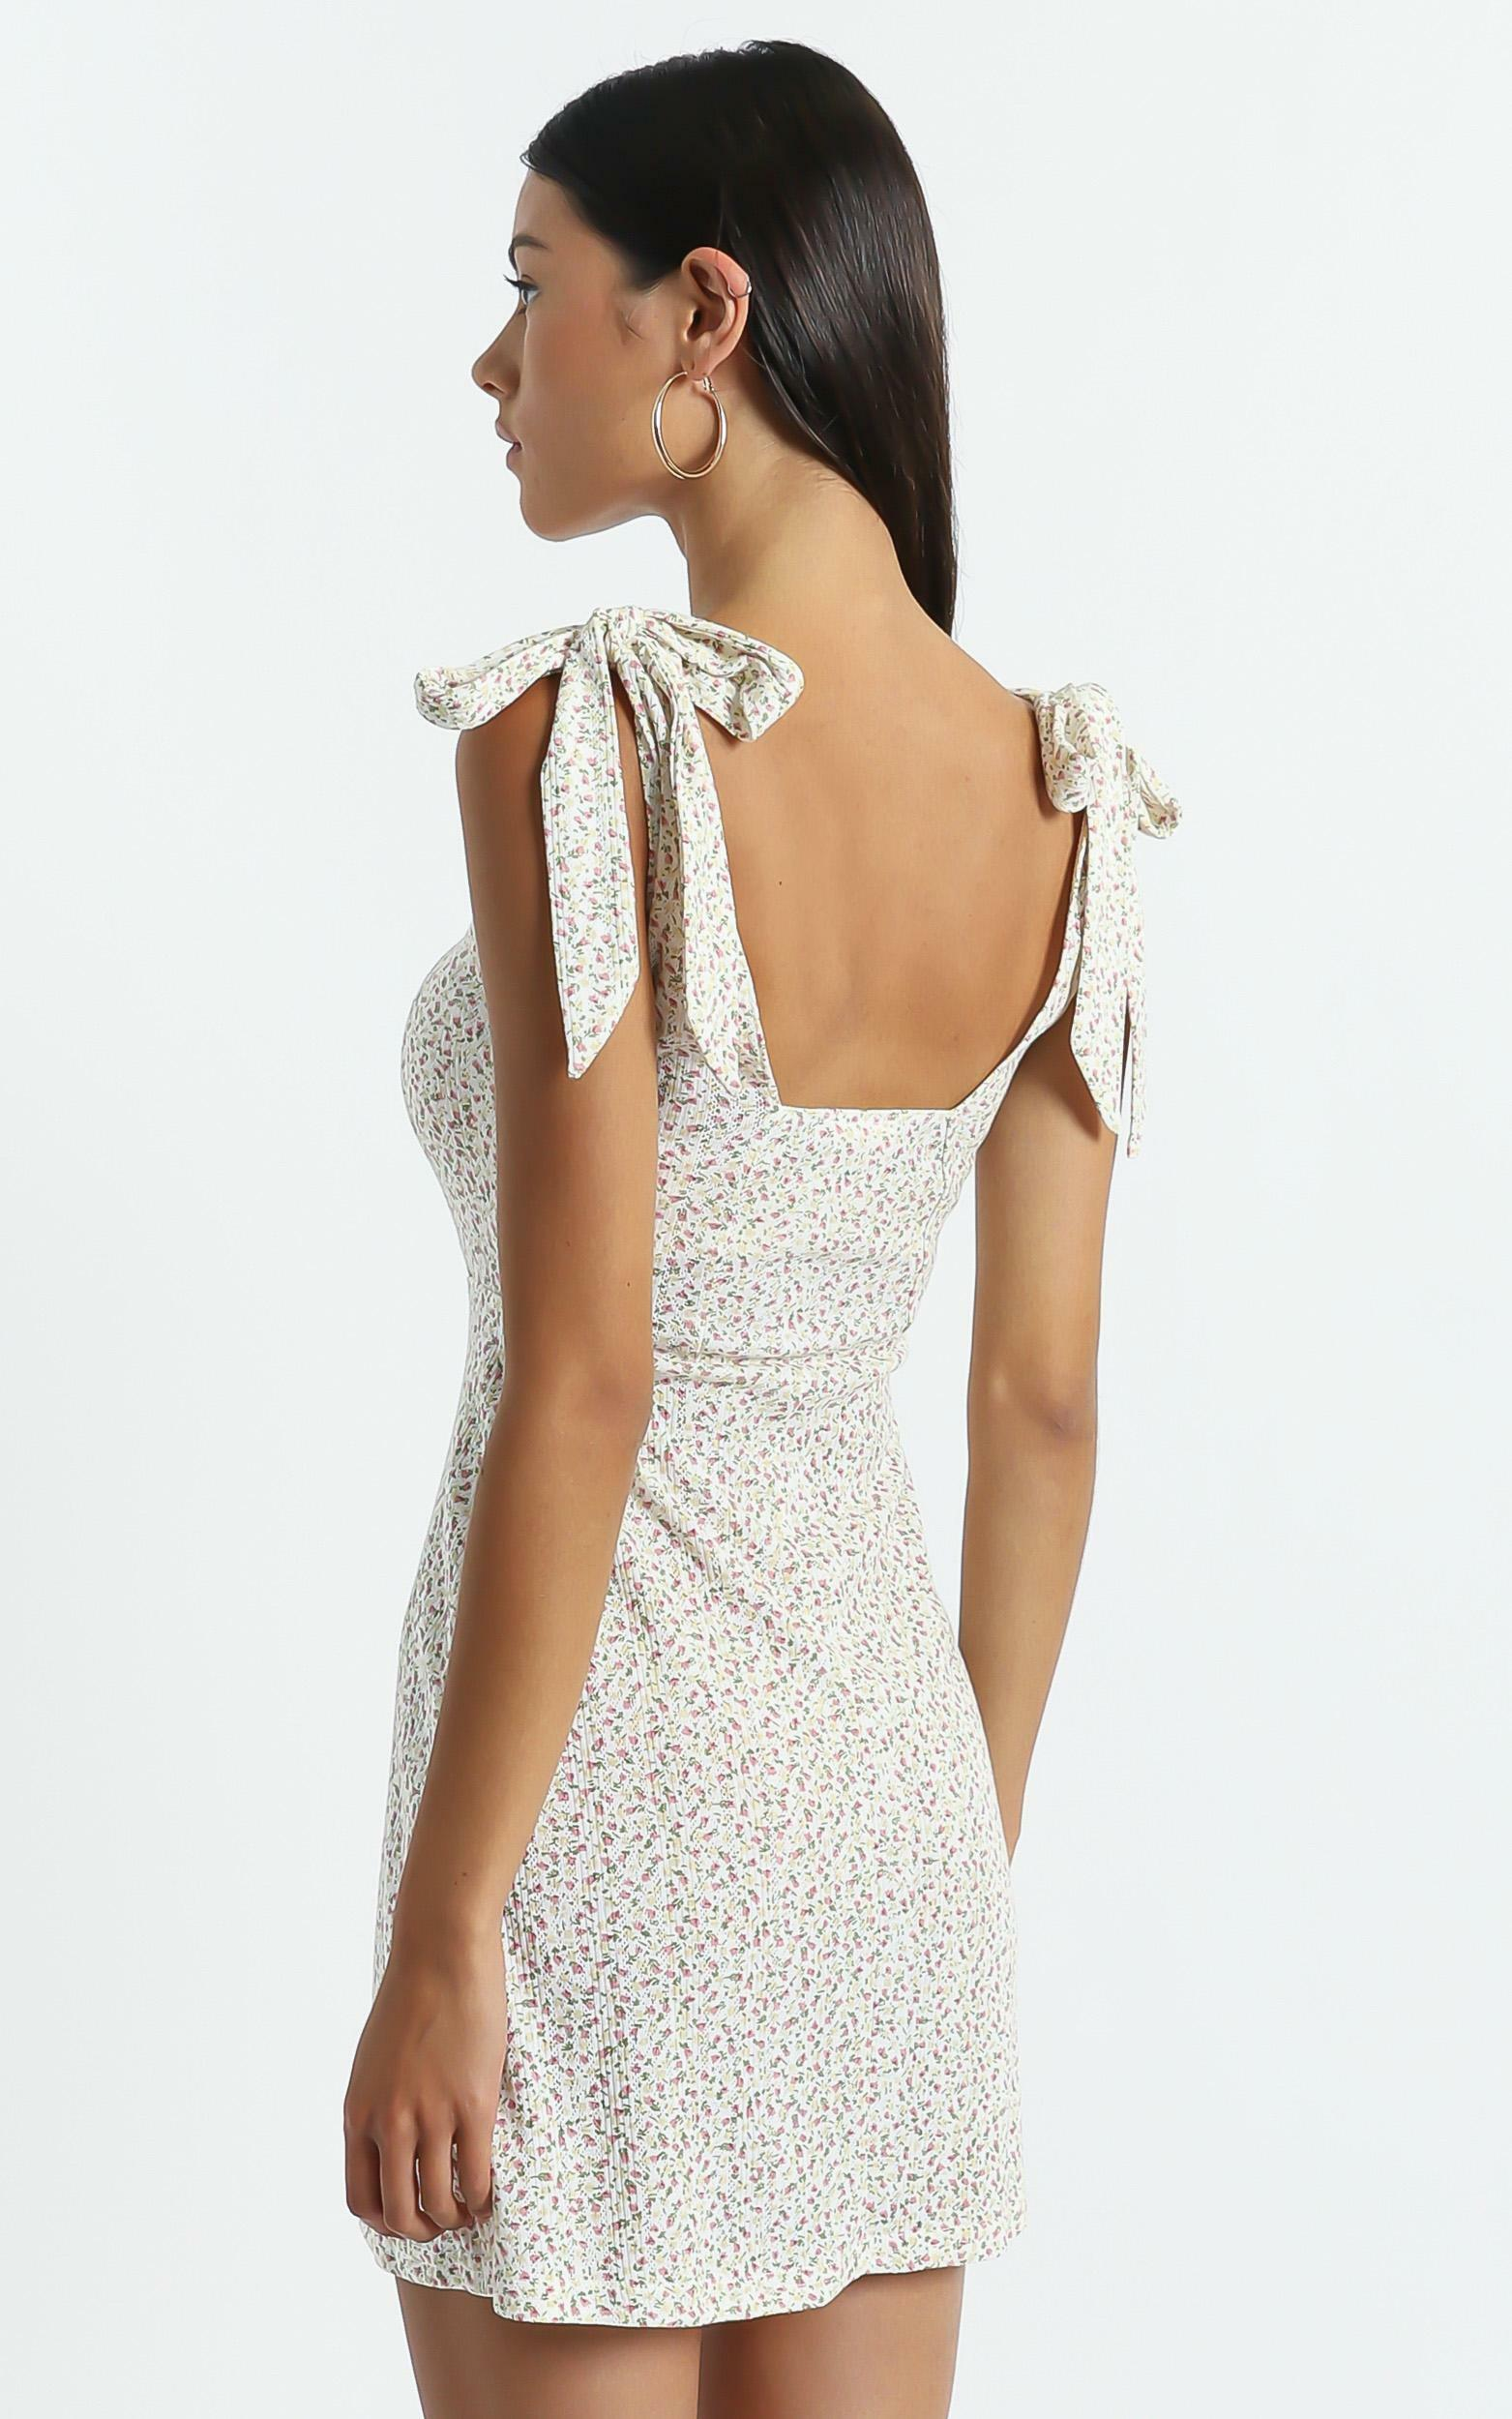 Sadira Dress in White Floral - 6 (XS), WHT1, hi-res image number null